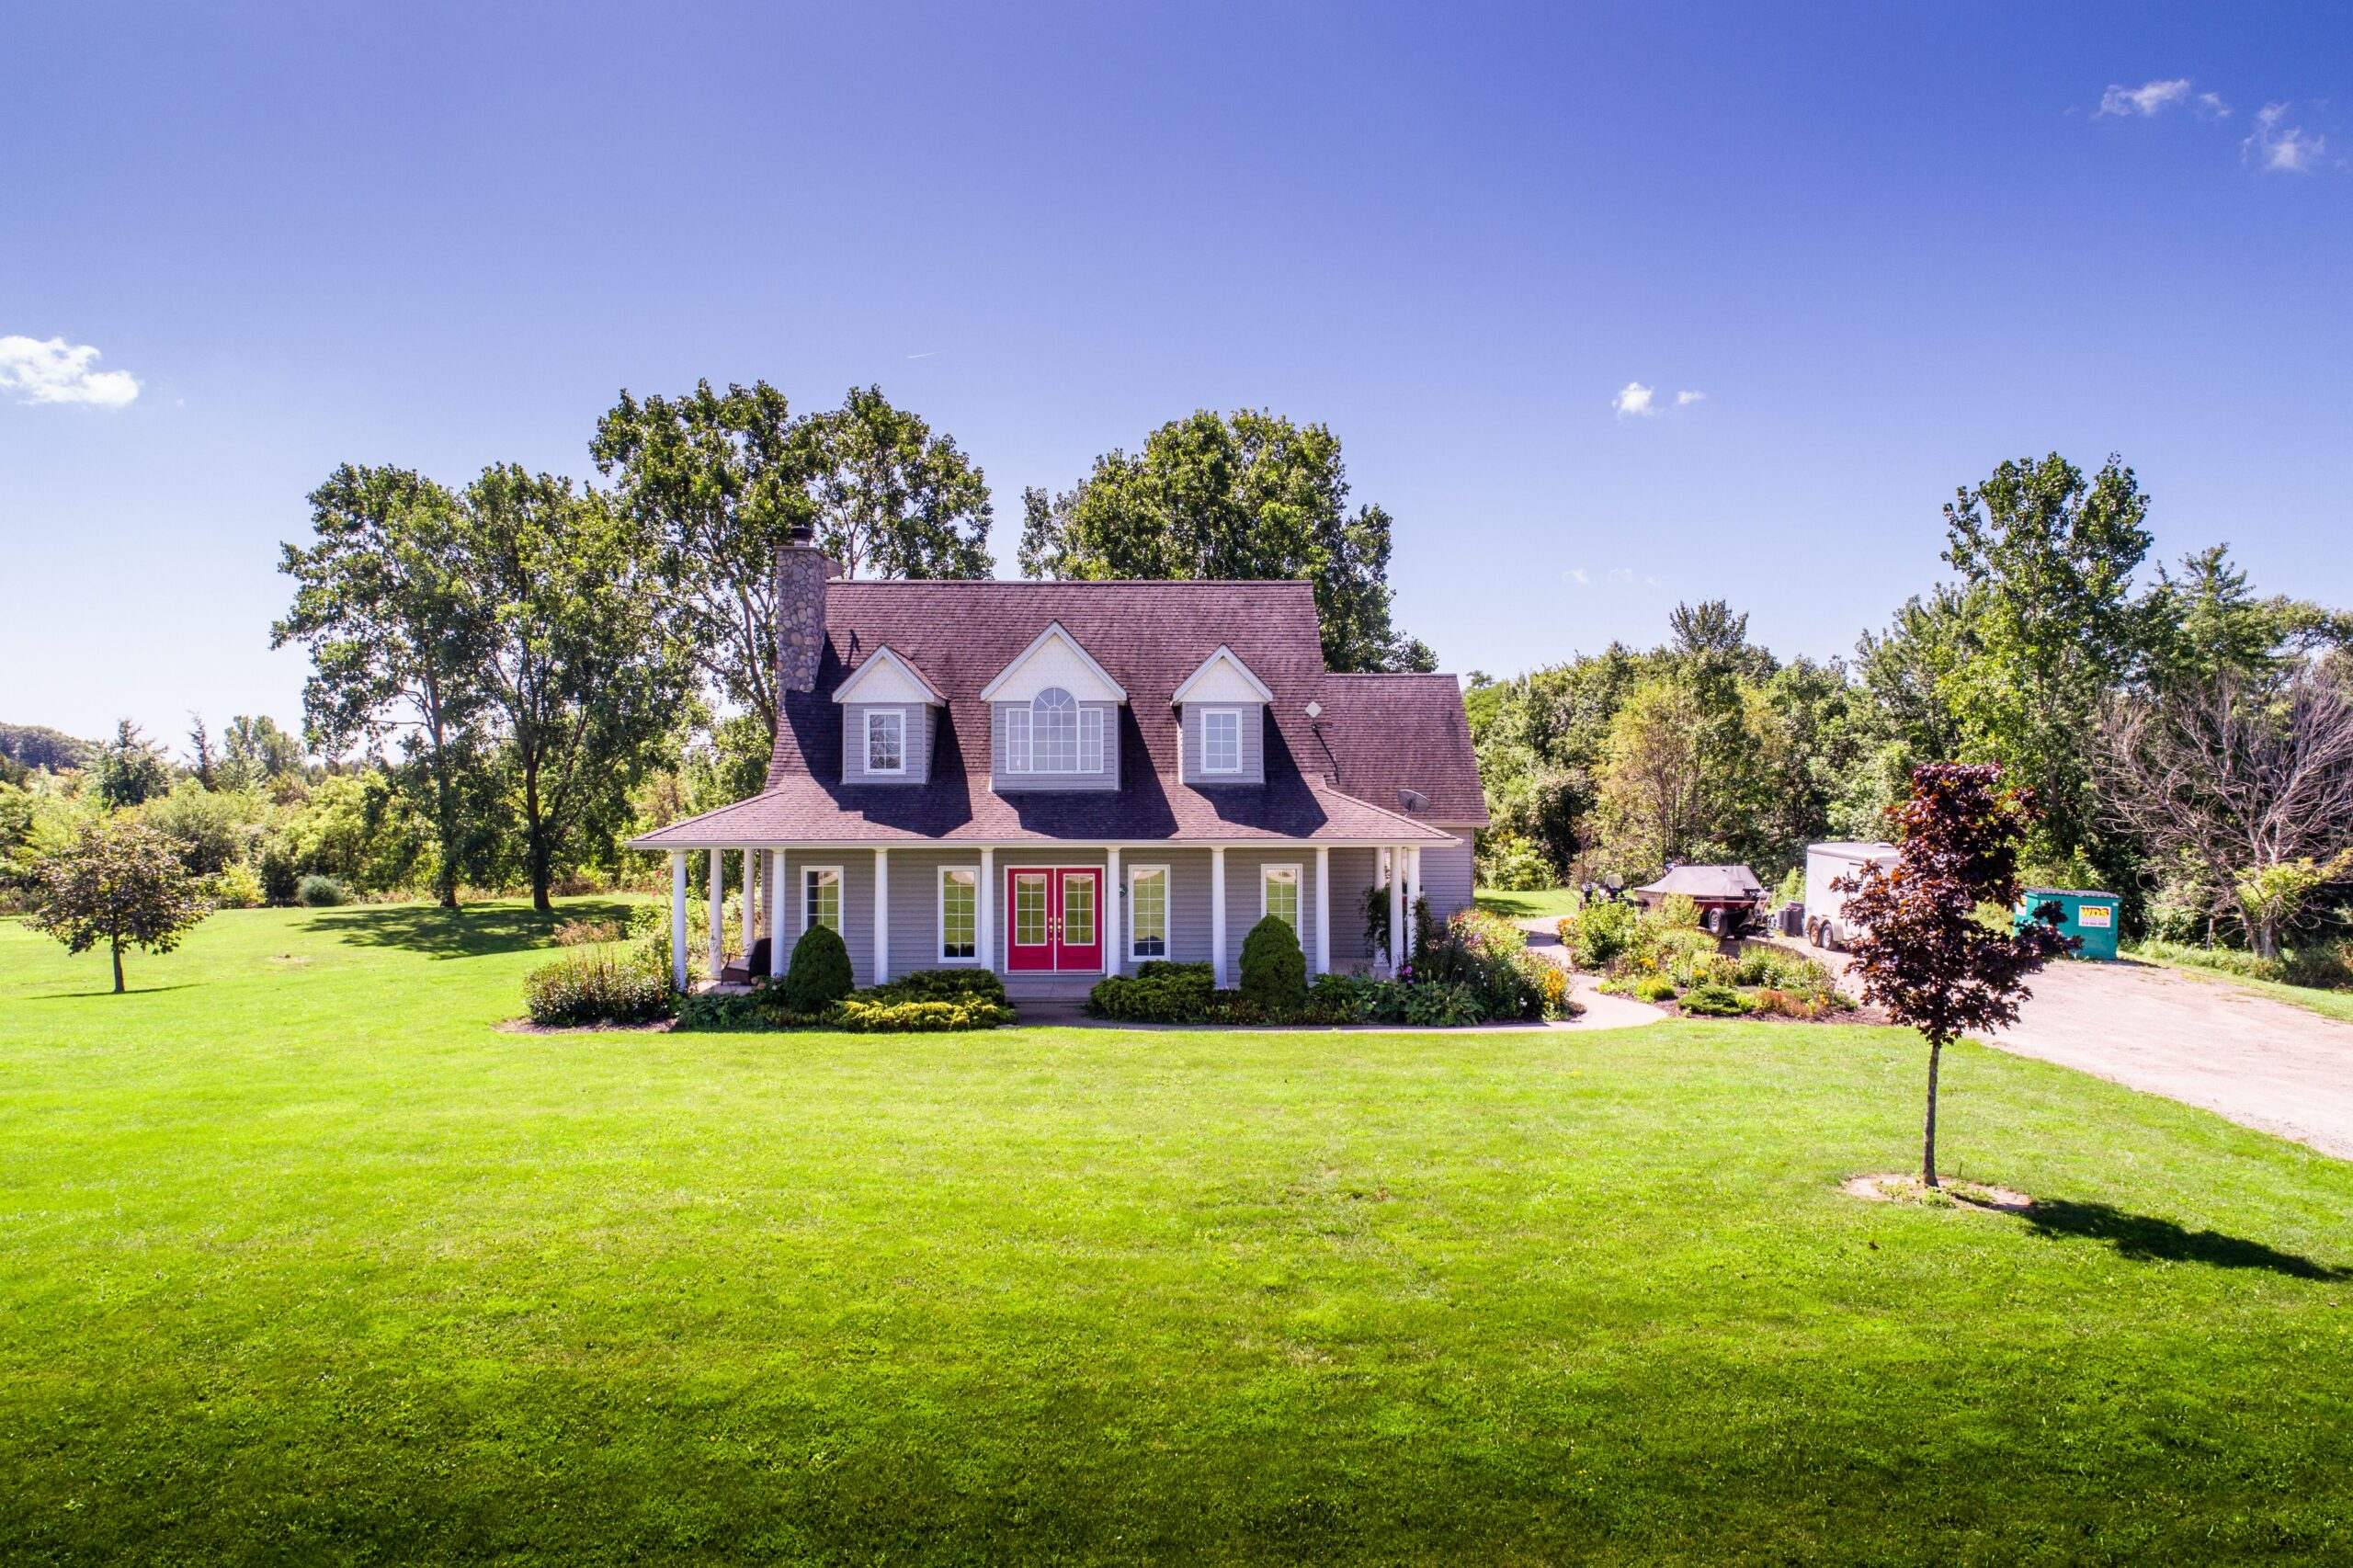 COUNTRY LIVING IN THE HEART OF ESSEX COUNTY!